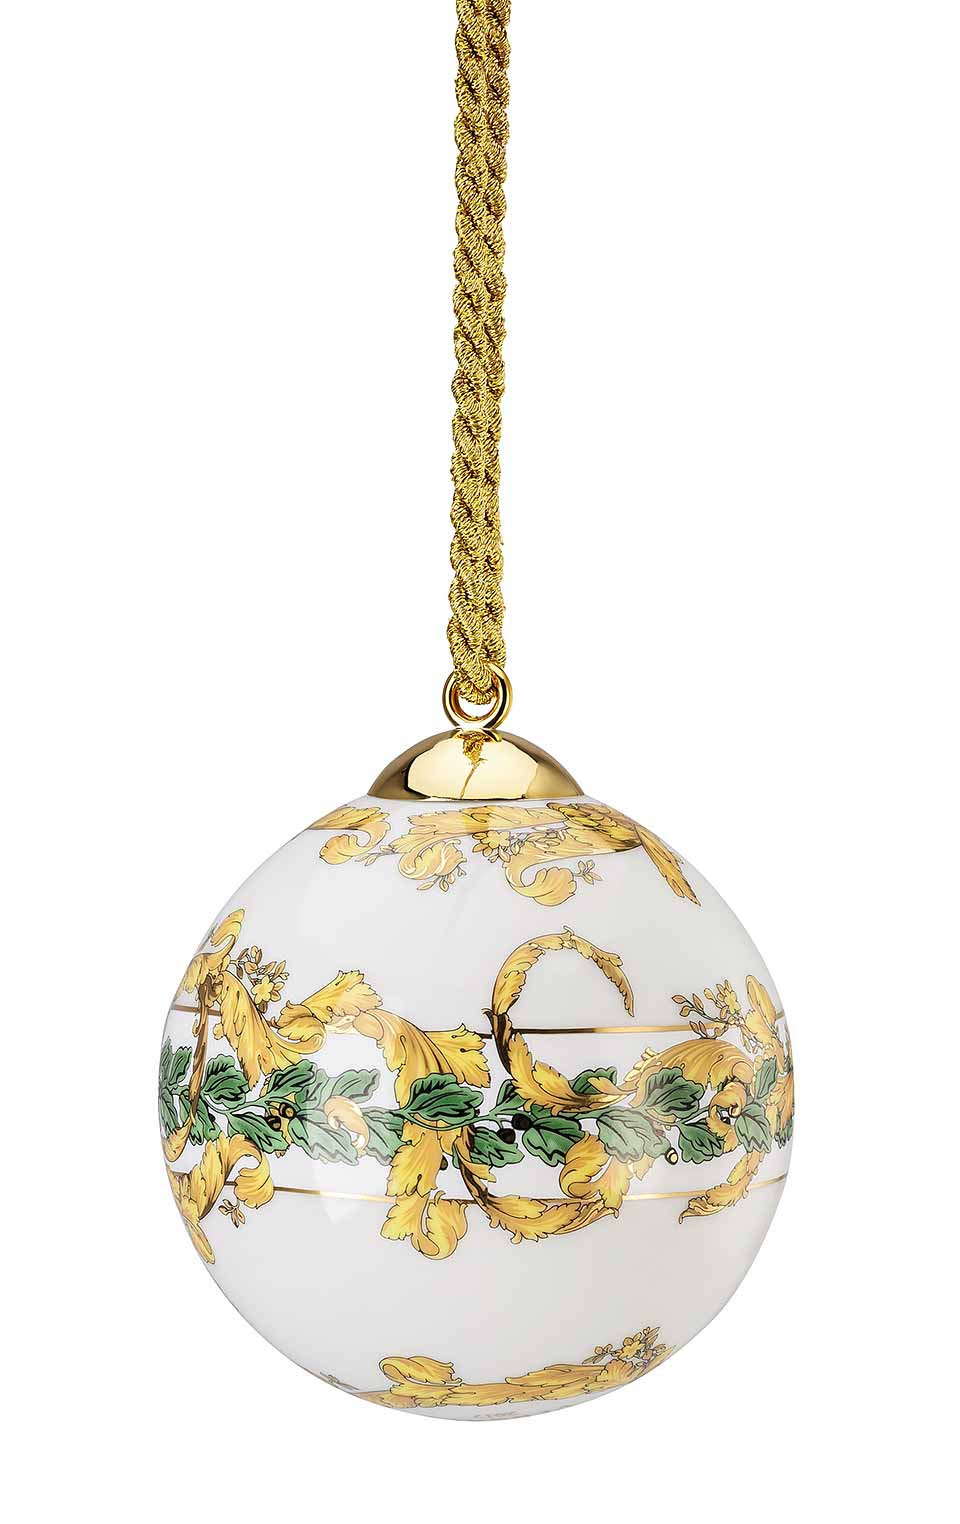 VERSACE Porcelain Ball